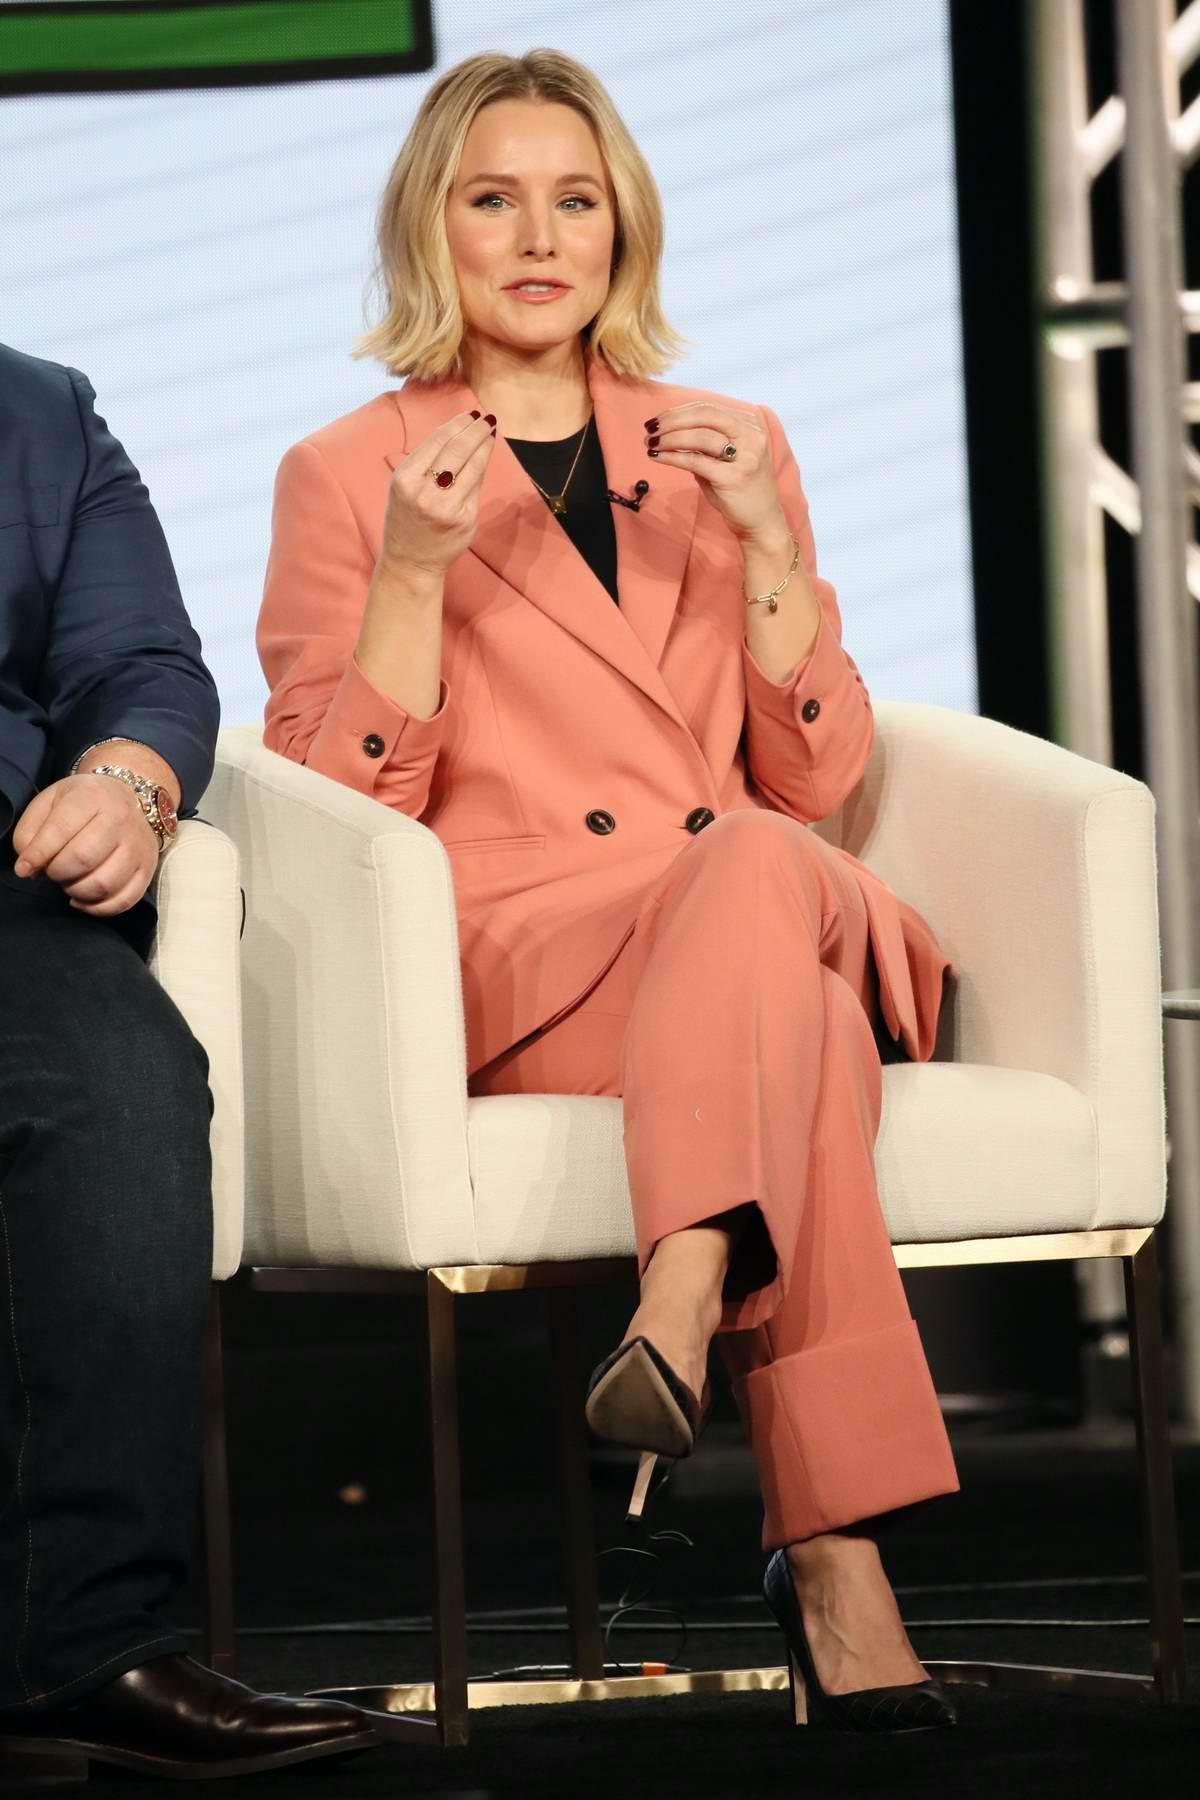 Kristen Bell attends Apple TV+ Winter TCA 2020 panel for 'Central Park' at The Langham in Pasadena, California